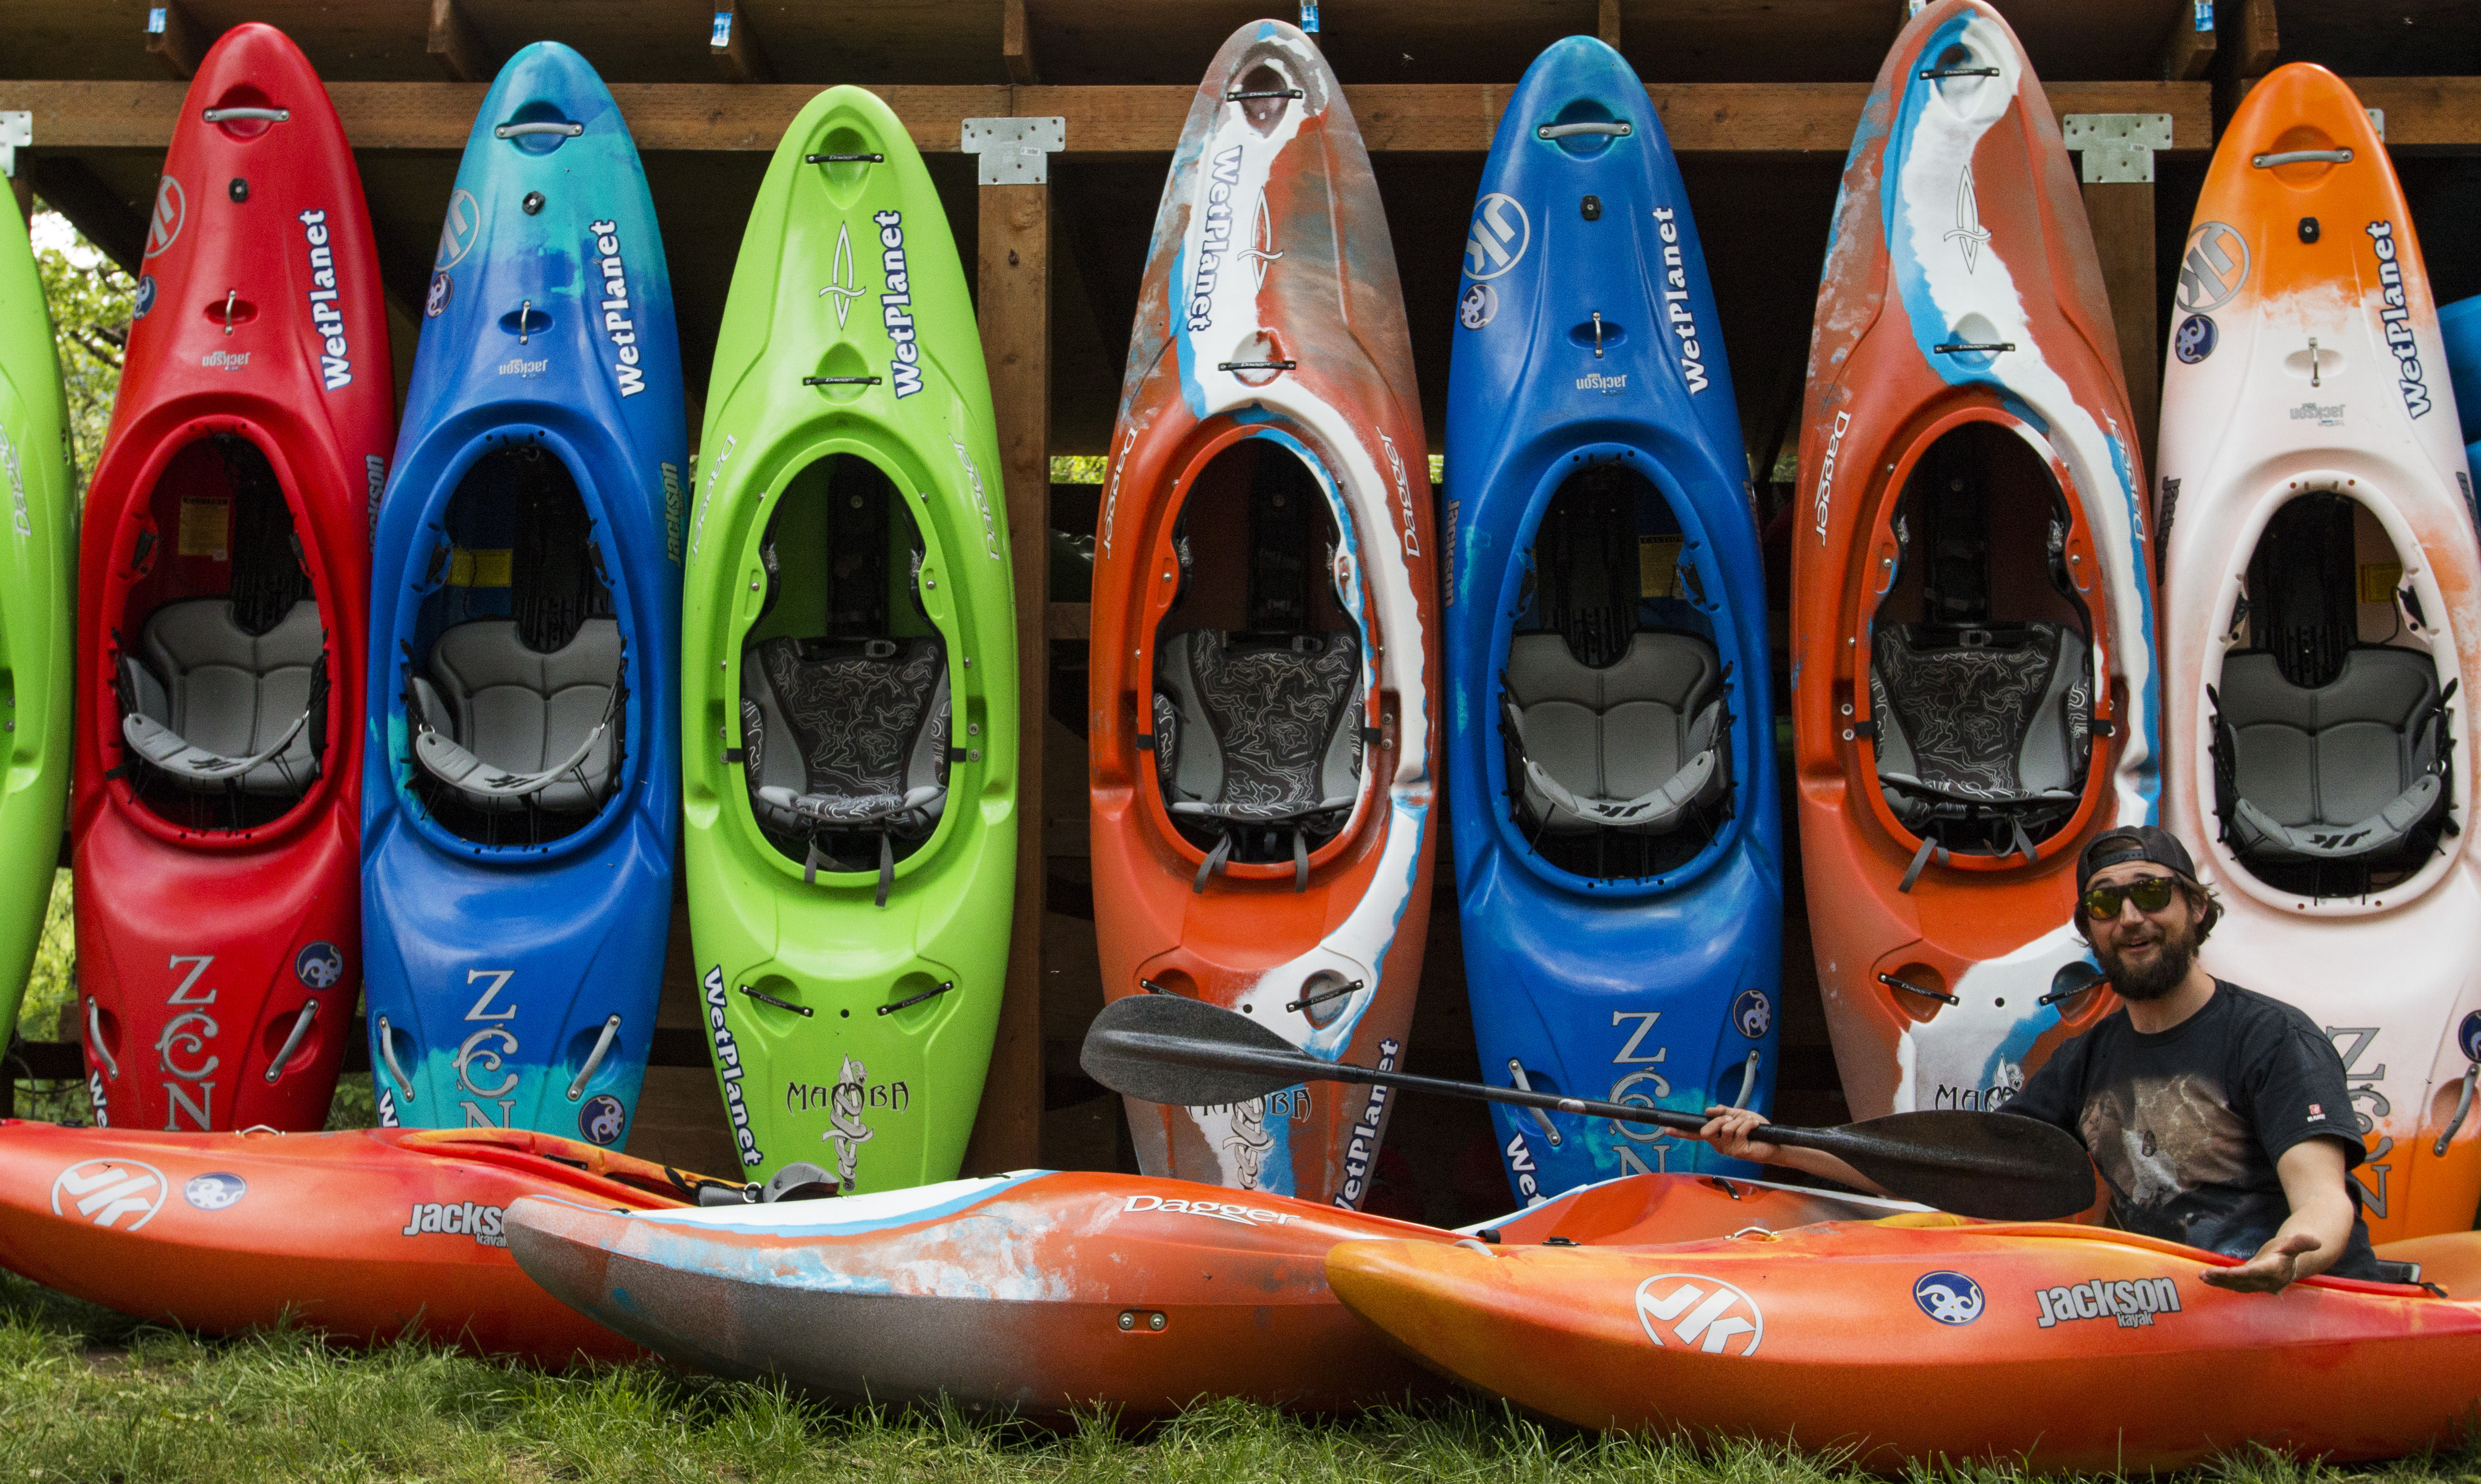 Whitewater Kayaks For Sale >> Wet Planet Kayak School S Annual Used Kayak Sale Is Here